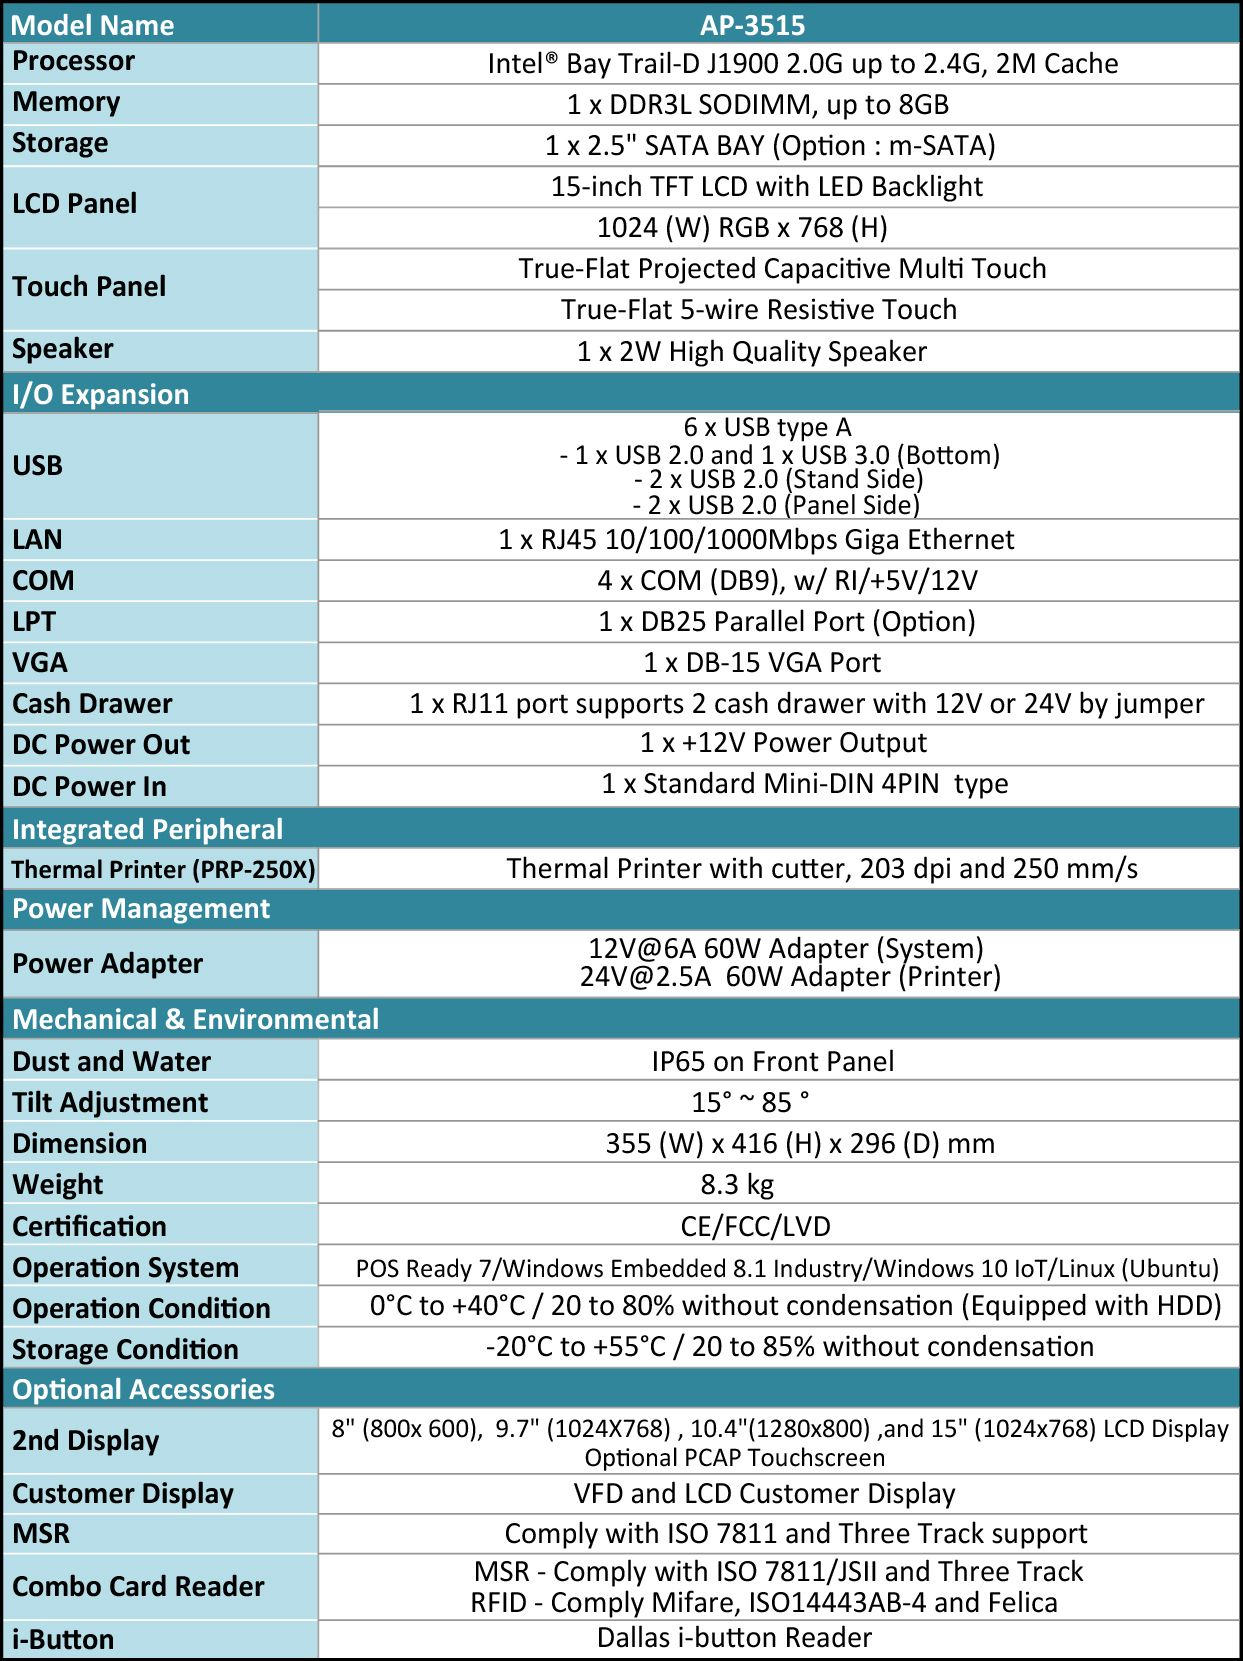 Specification of AP-3515